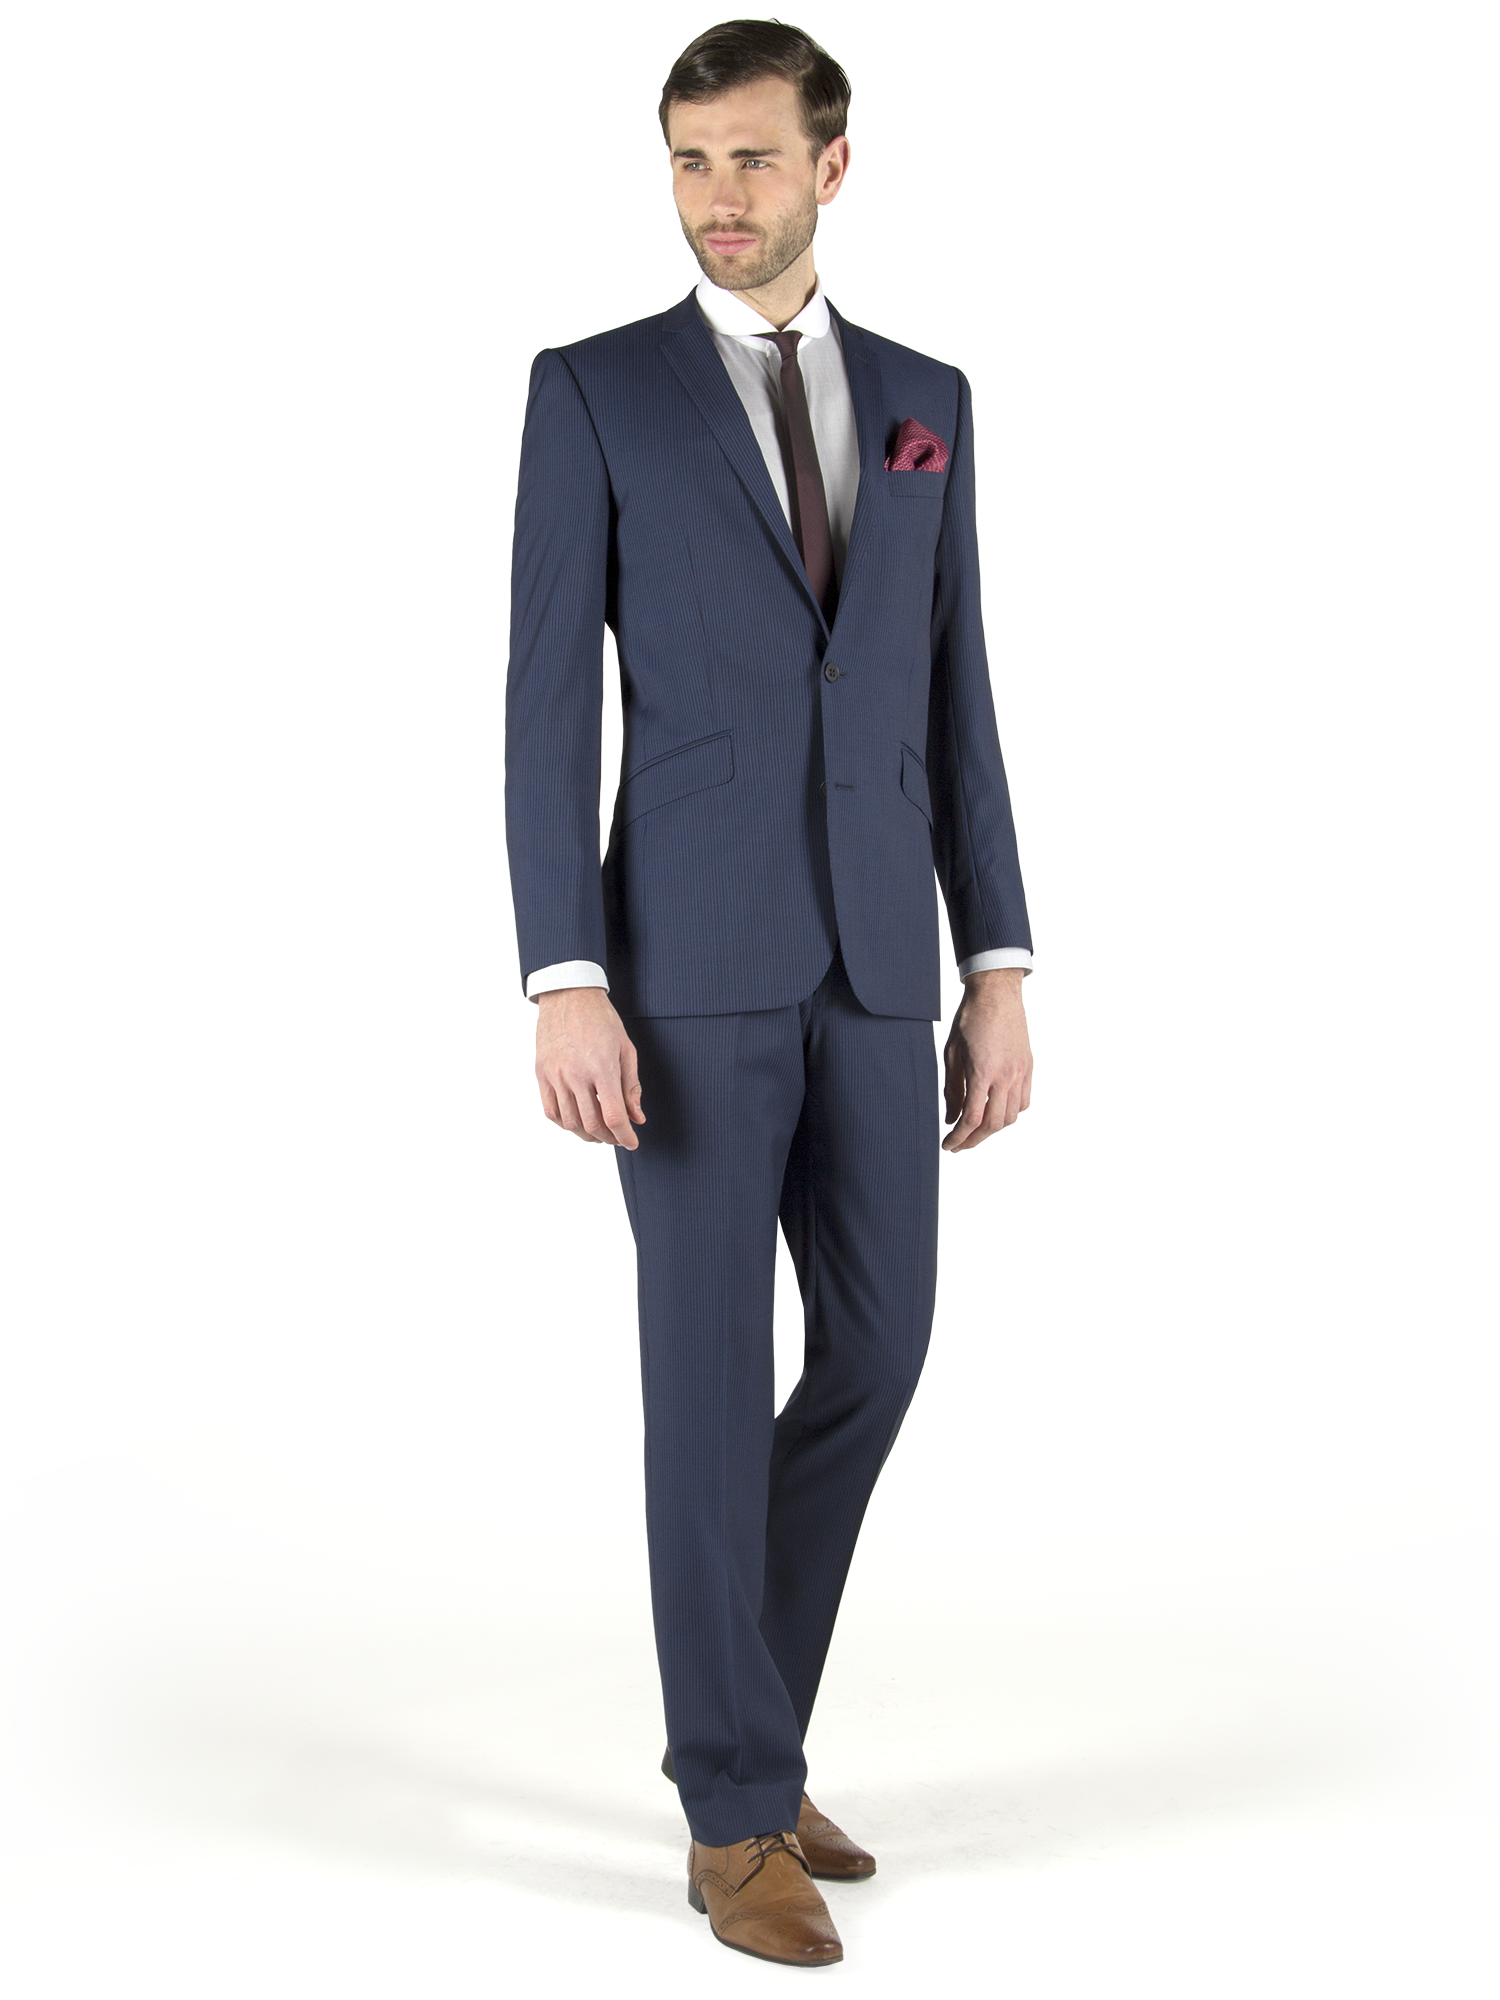 Guy in suit png. Formal mart